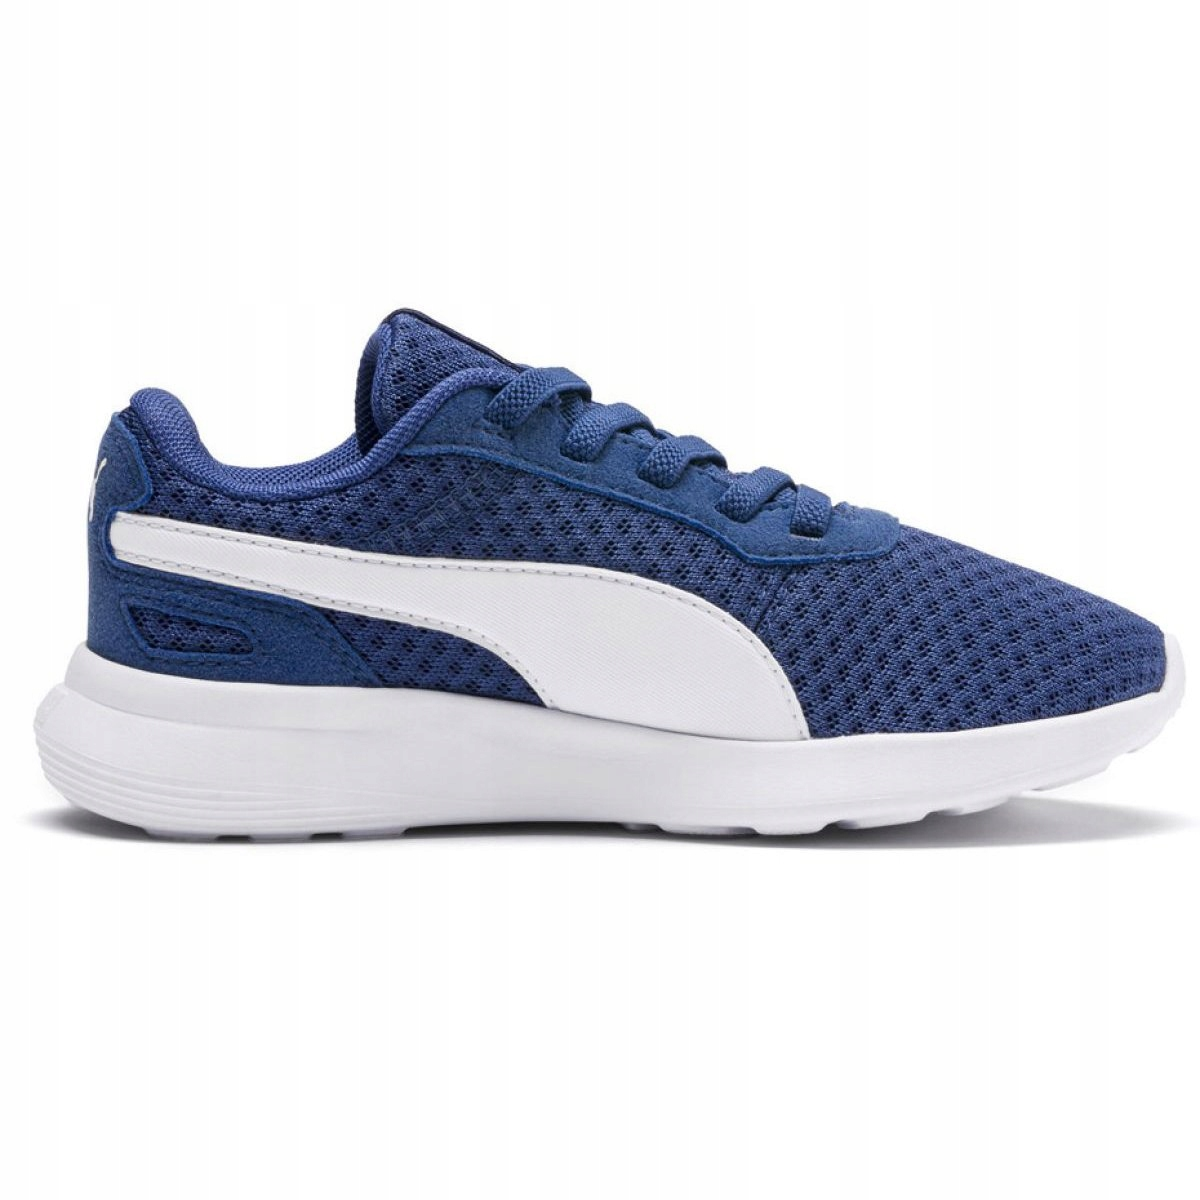 Buty Puma St Activate Ac Ps Jr 369070 08 r.33